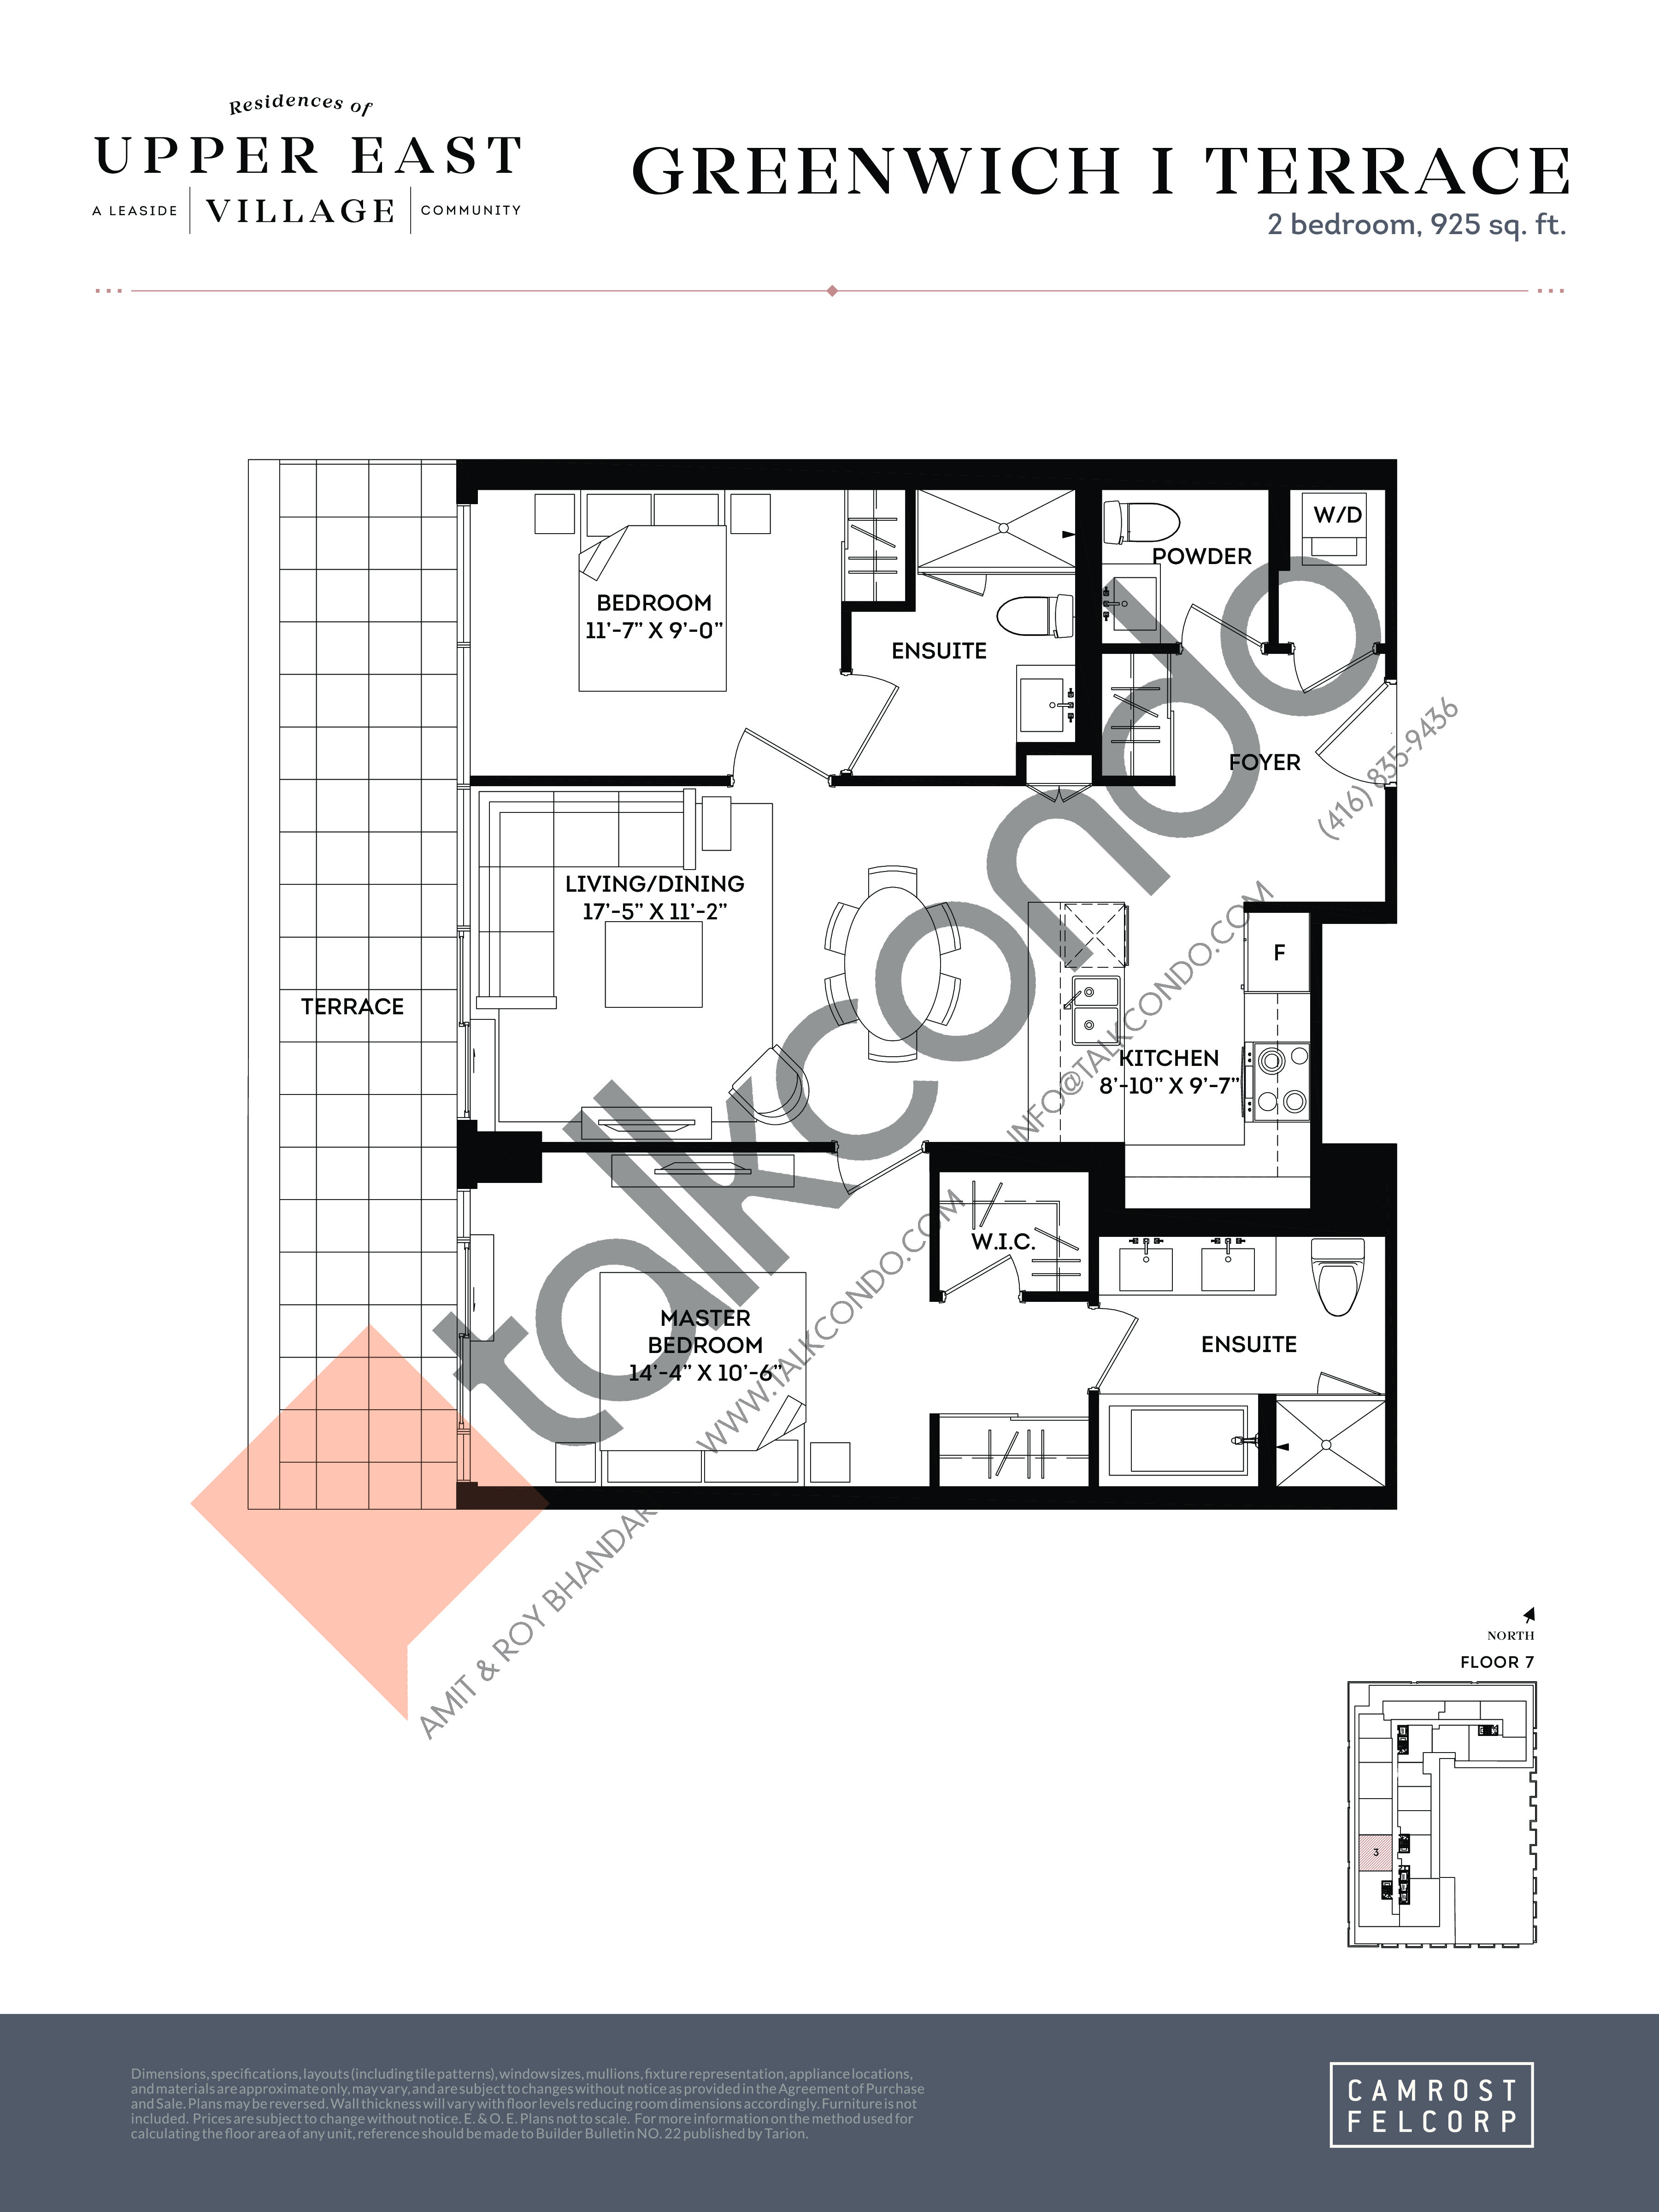 Greenwich I Terrace Floor Plan at Upper East Village Condos - 925 sq.ft